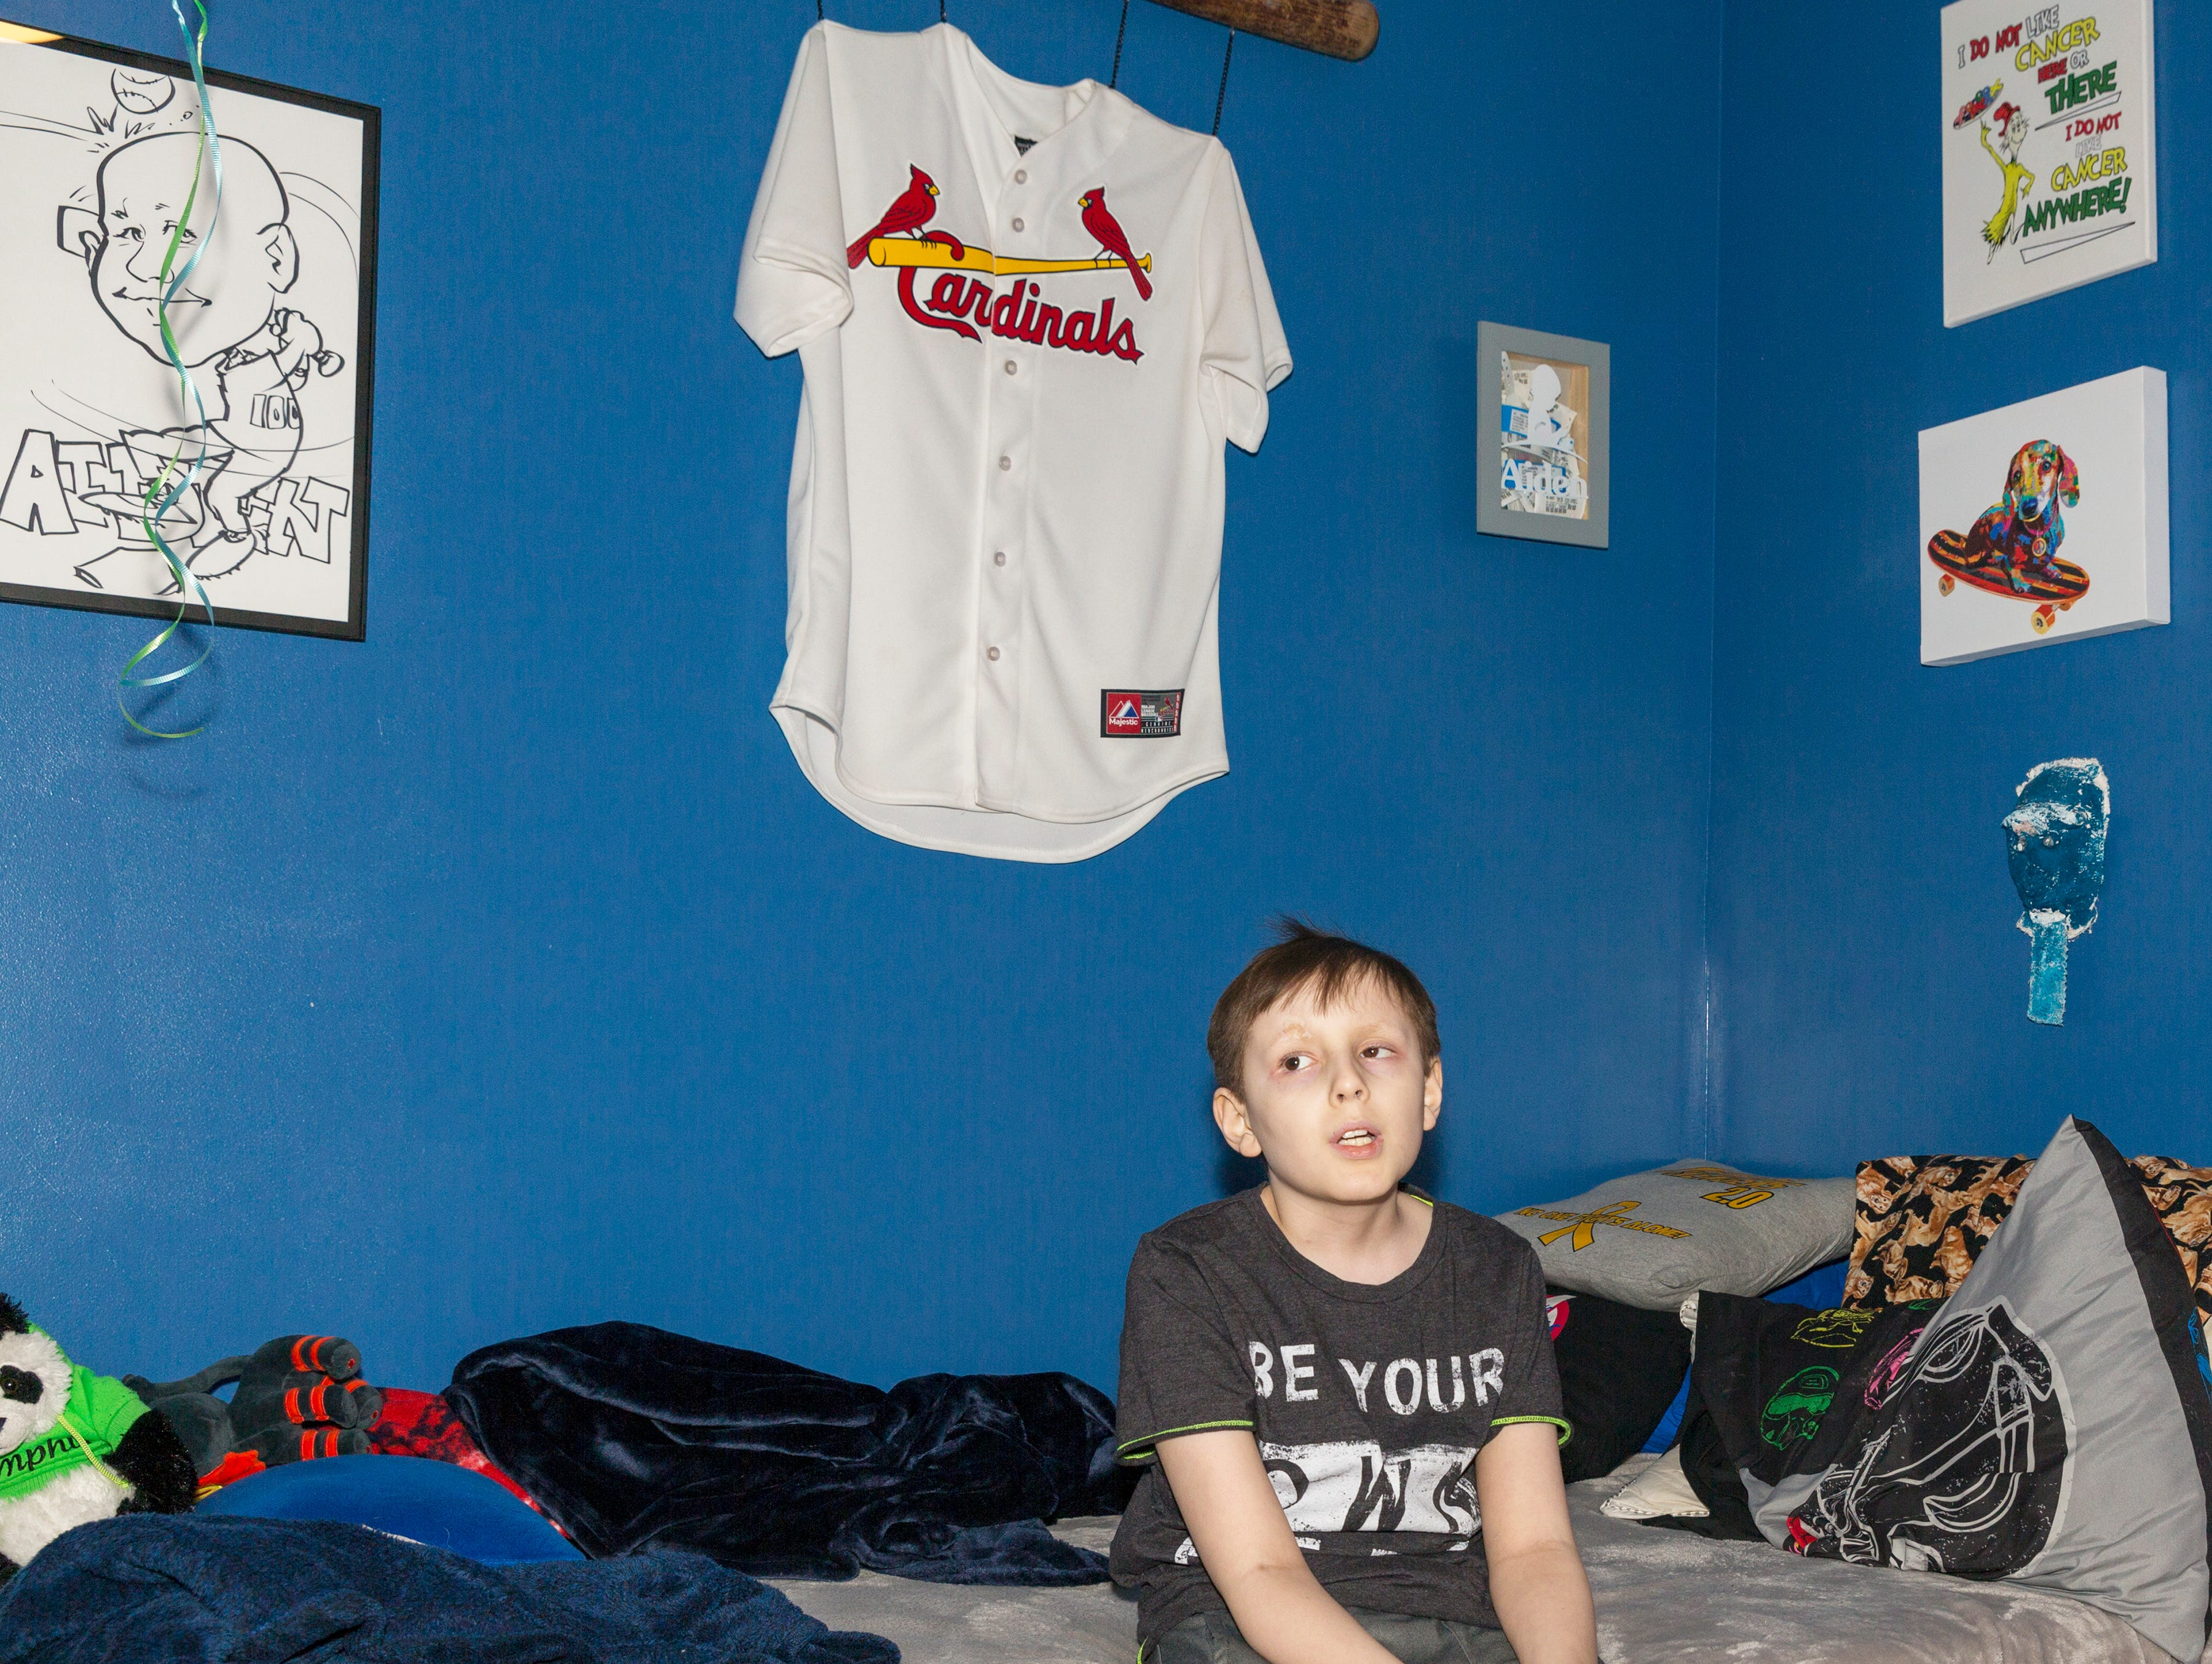 Aiden Taylor sits on his bed at his family's home in Jackson, Tenn. His walls are adorned in artwork and mementos, including a blue paper-mache mask he made in school.